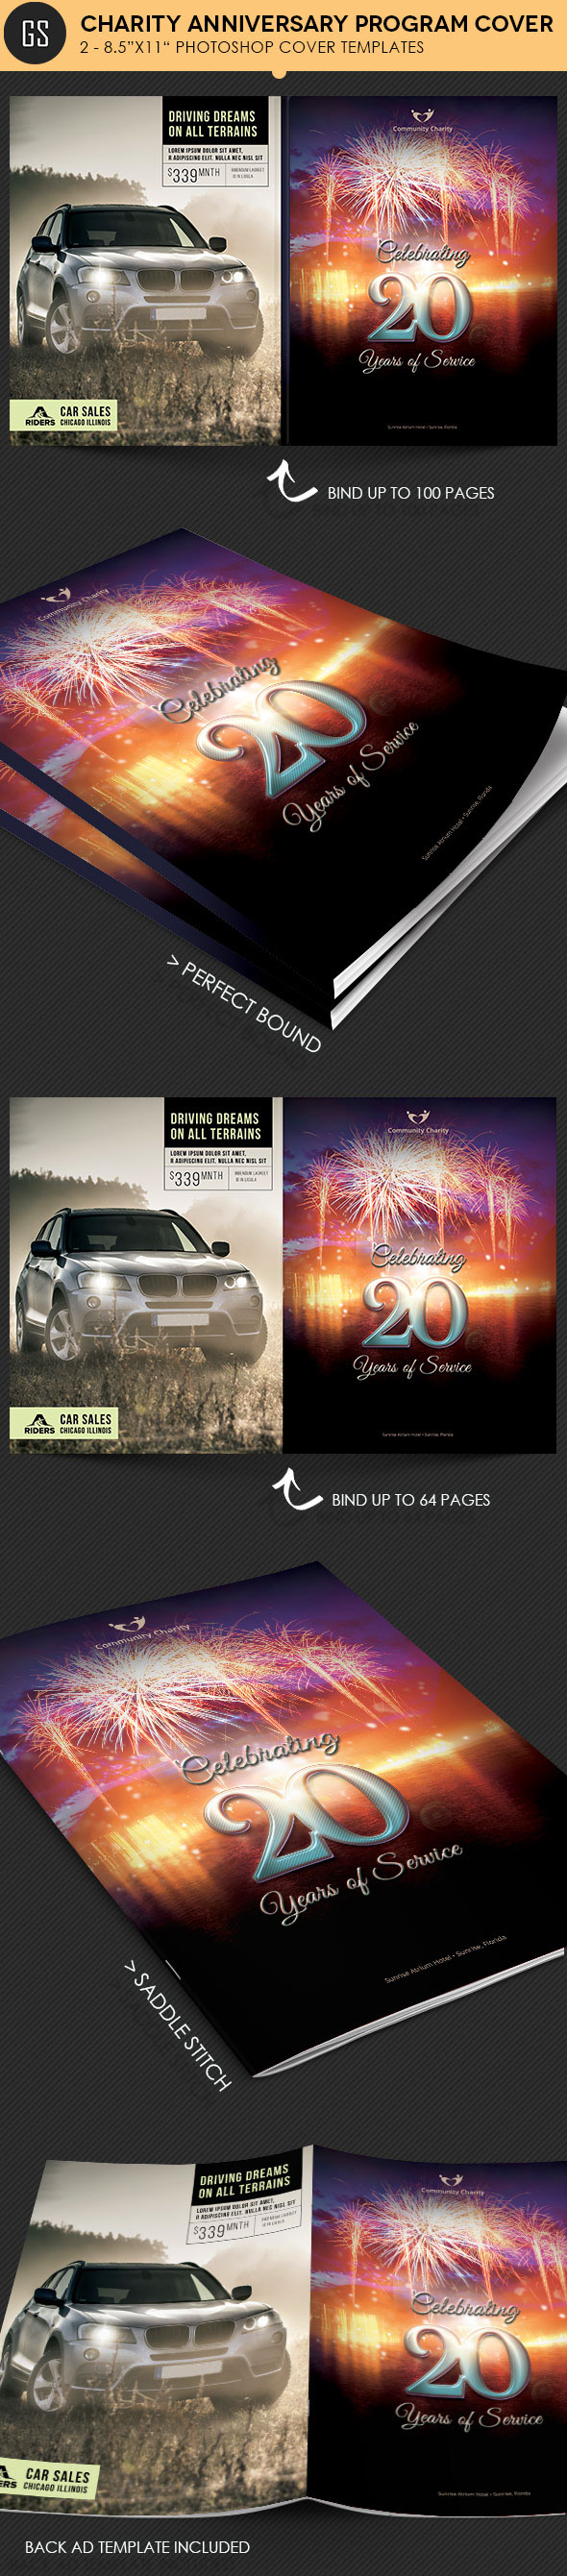 charity anniversary program cover template on behance